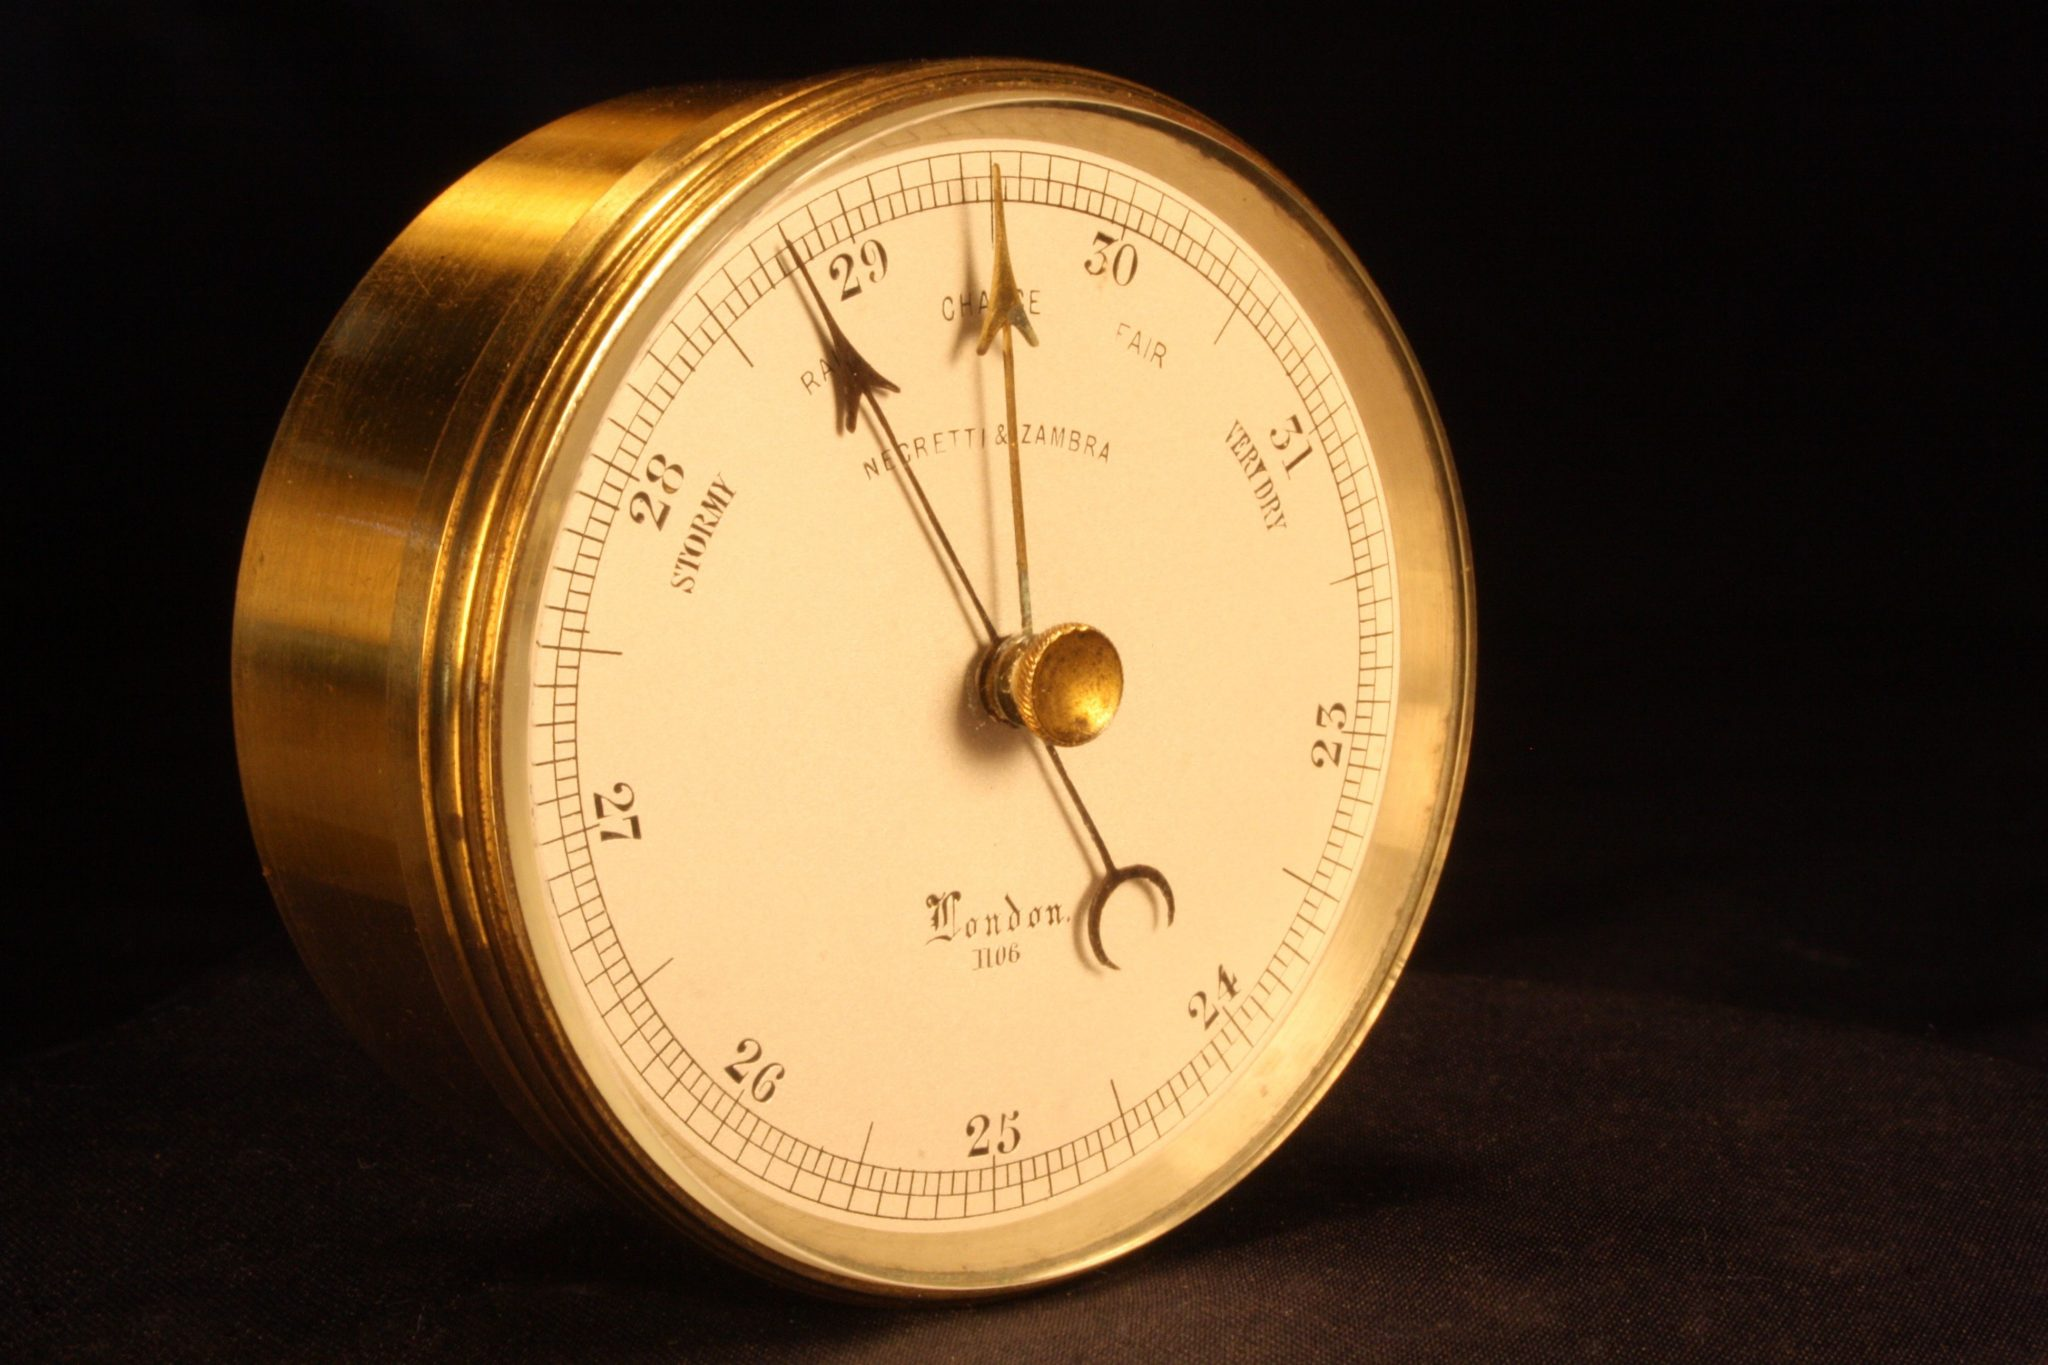 Image of Negretti & Zambra Pocket Barometer No 1106